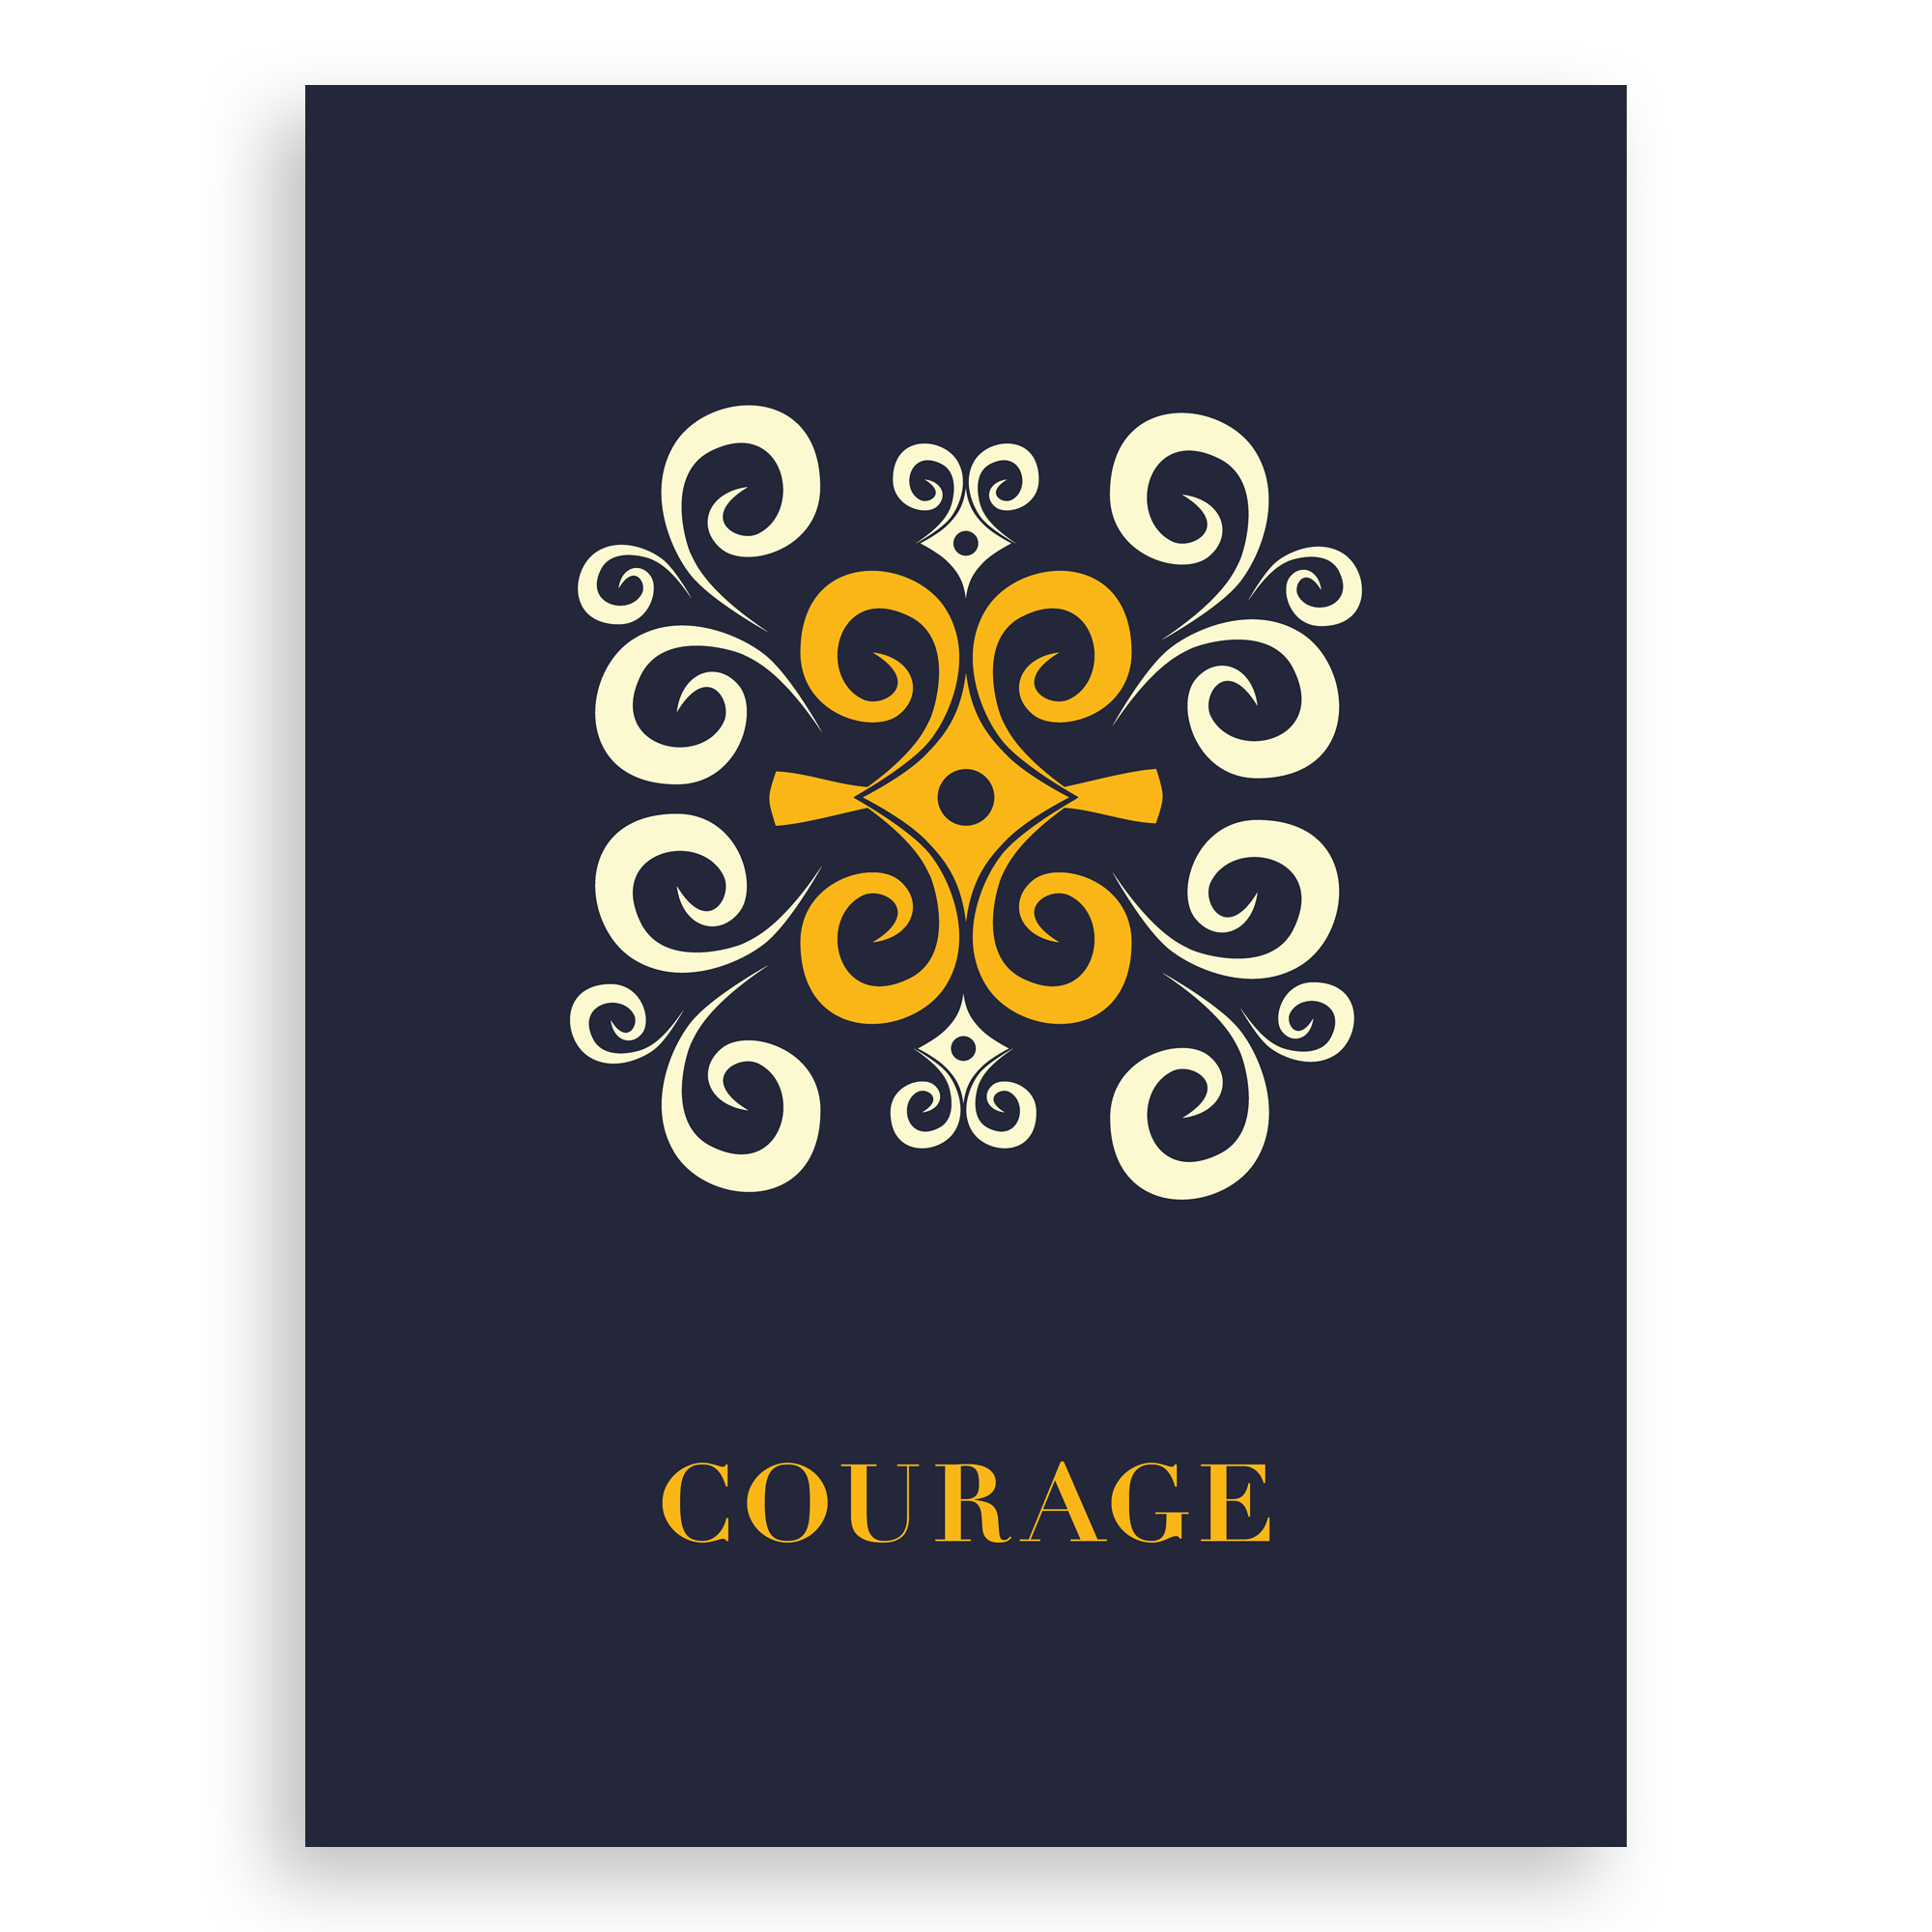 Adinkra-Inspired Graphic Print – Courage